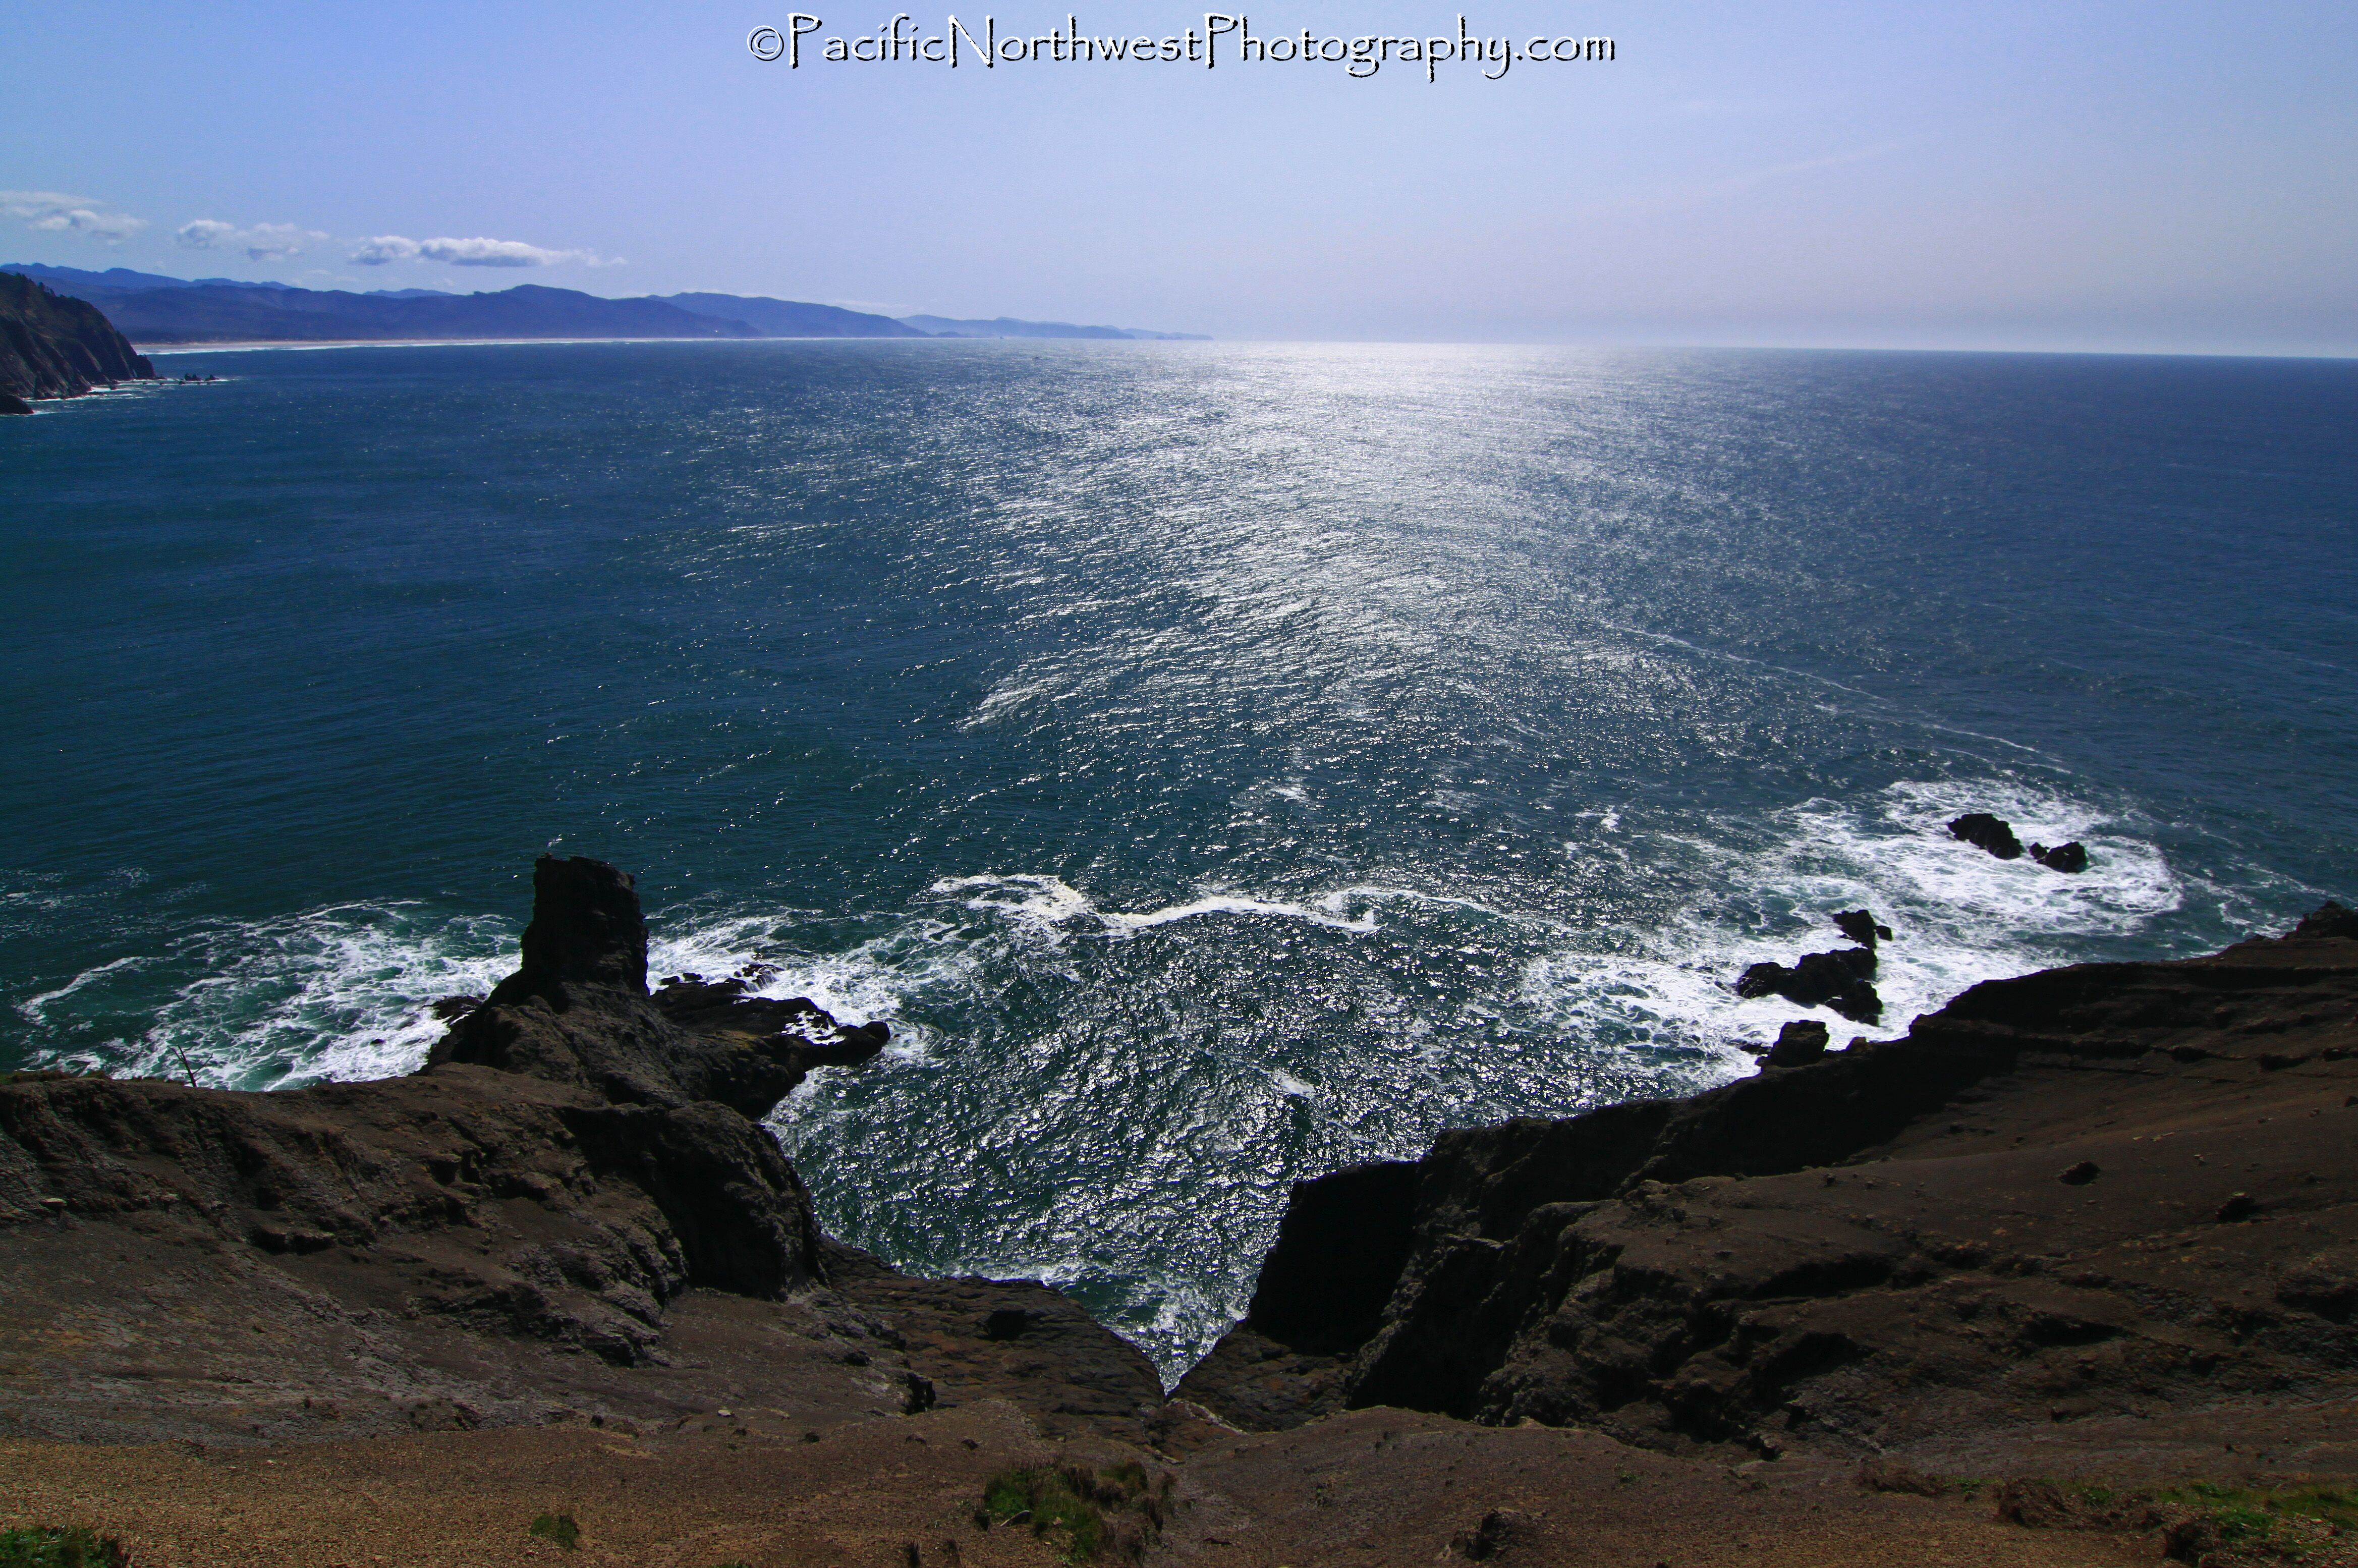 The view from Salal Headland